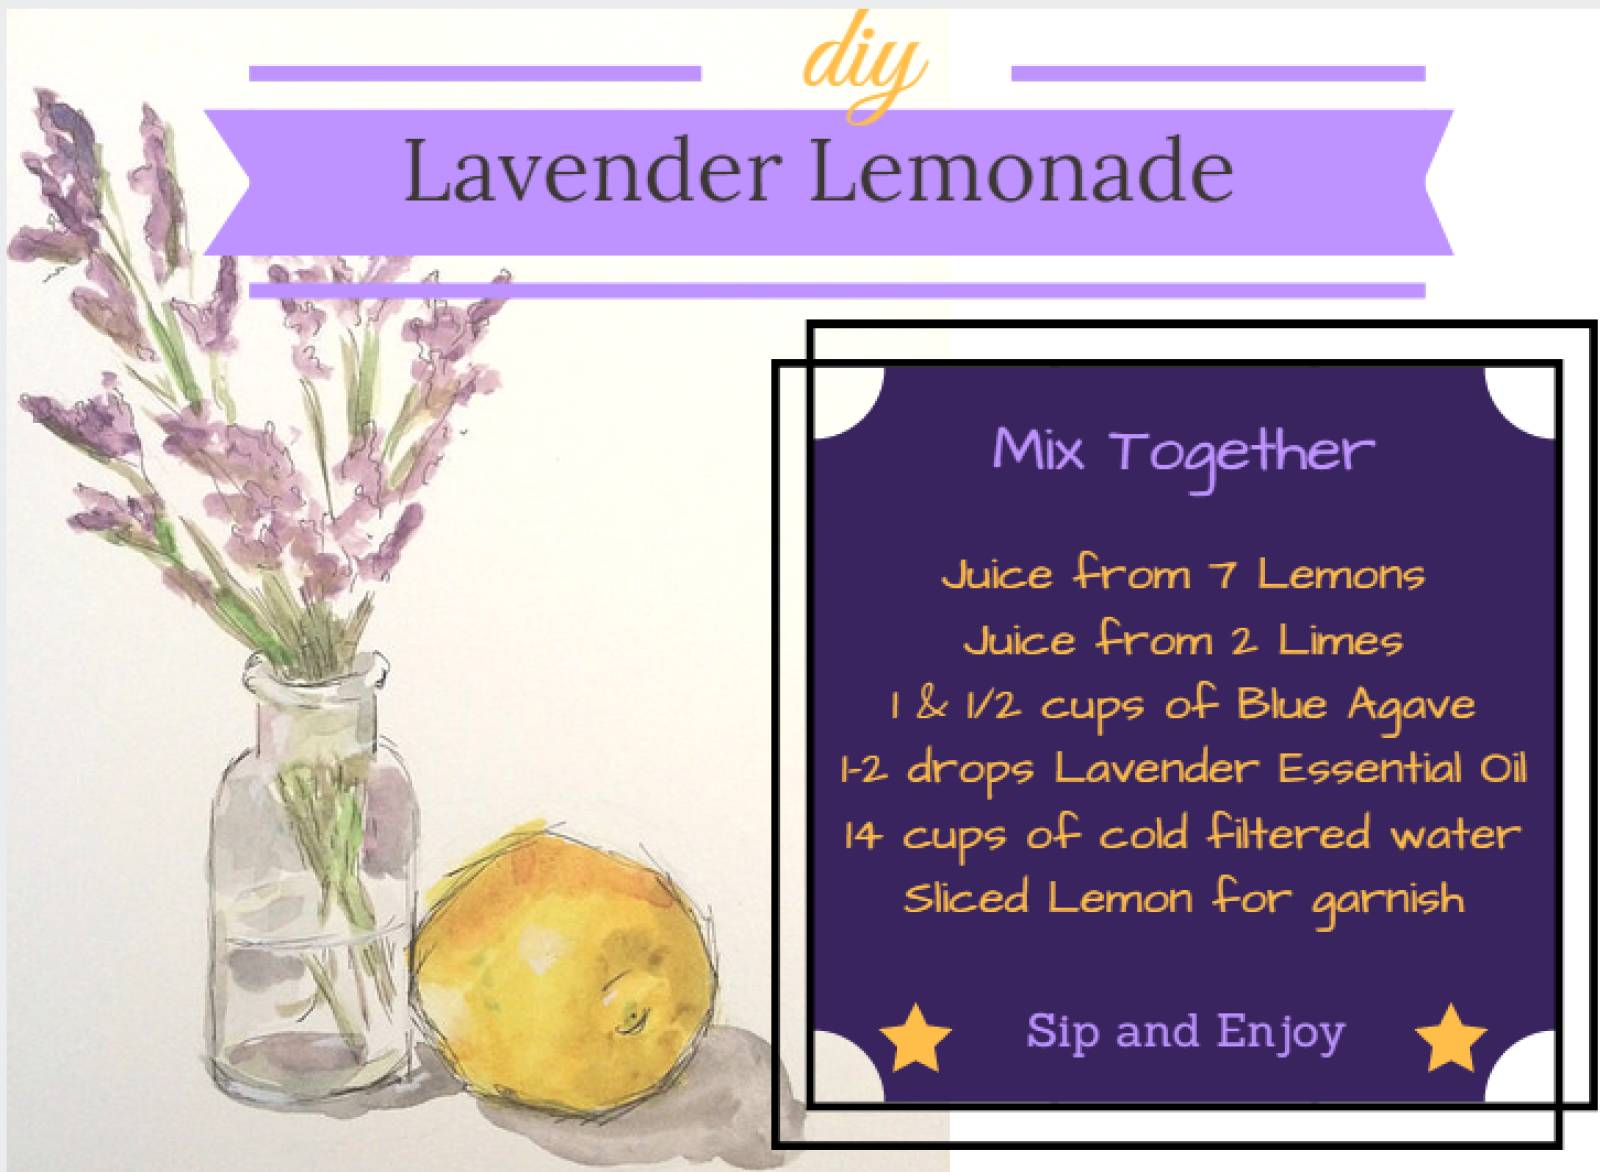 DIY Lavender Lemonade